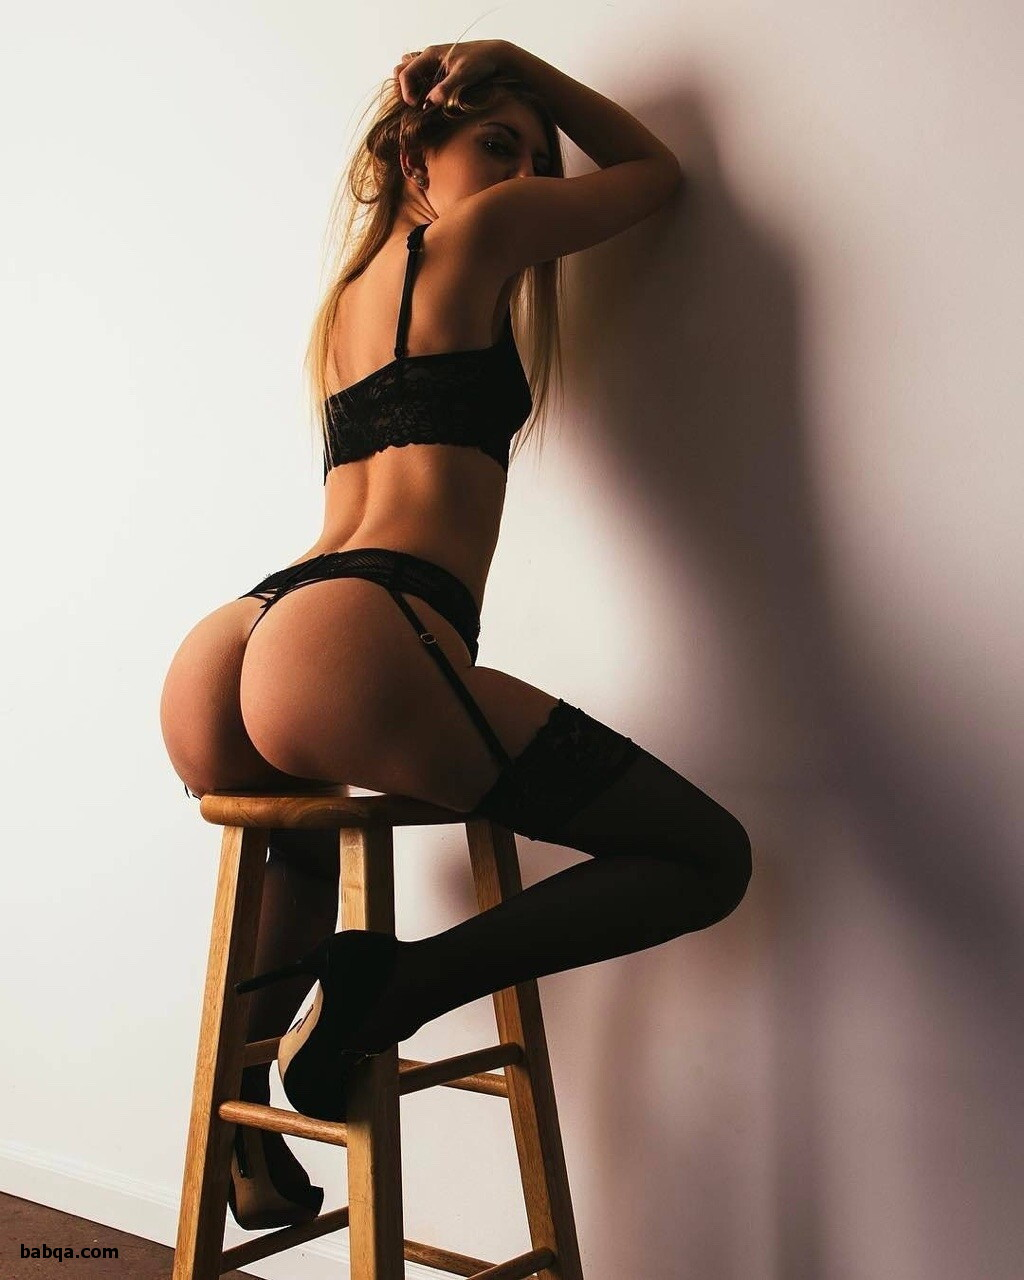 high heels stockings and milfs lingerie tumblr